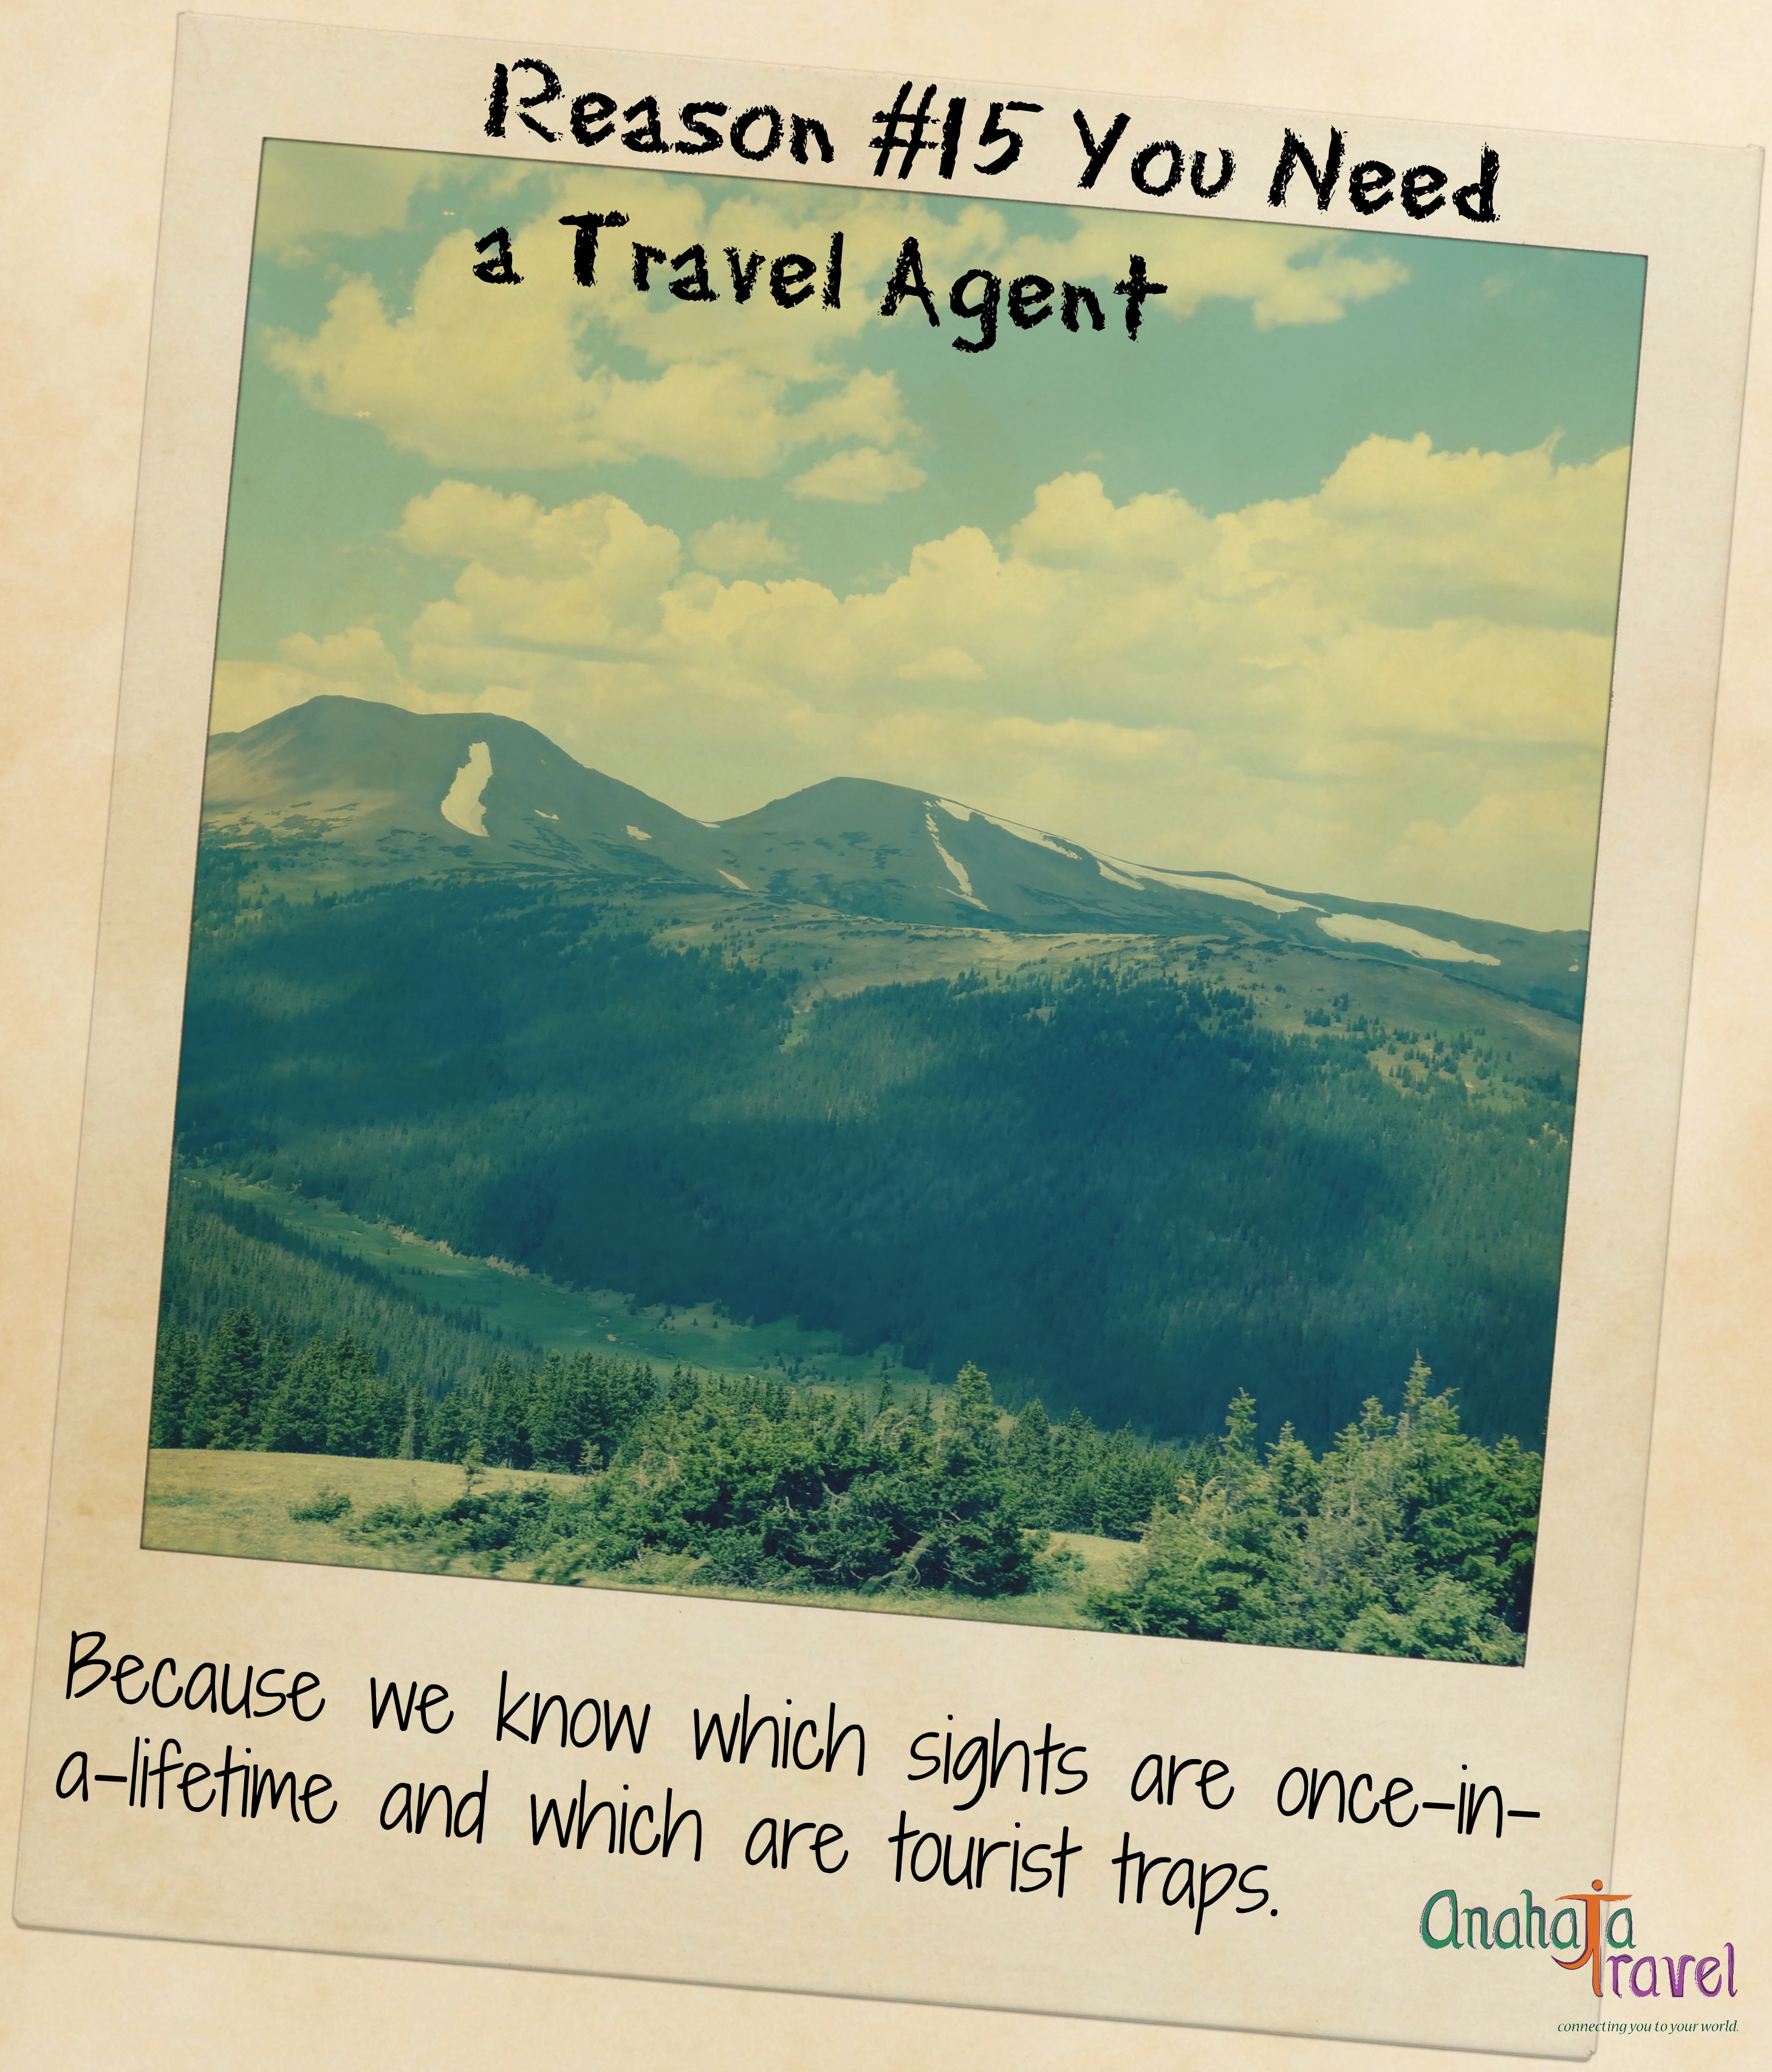 Reason #15 You Need a Travel Agent